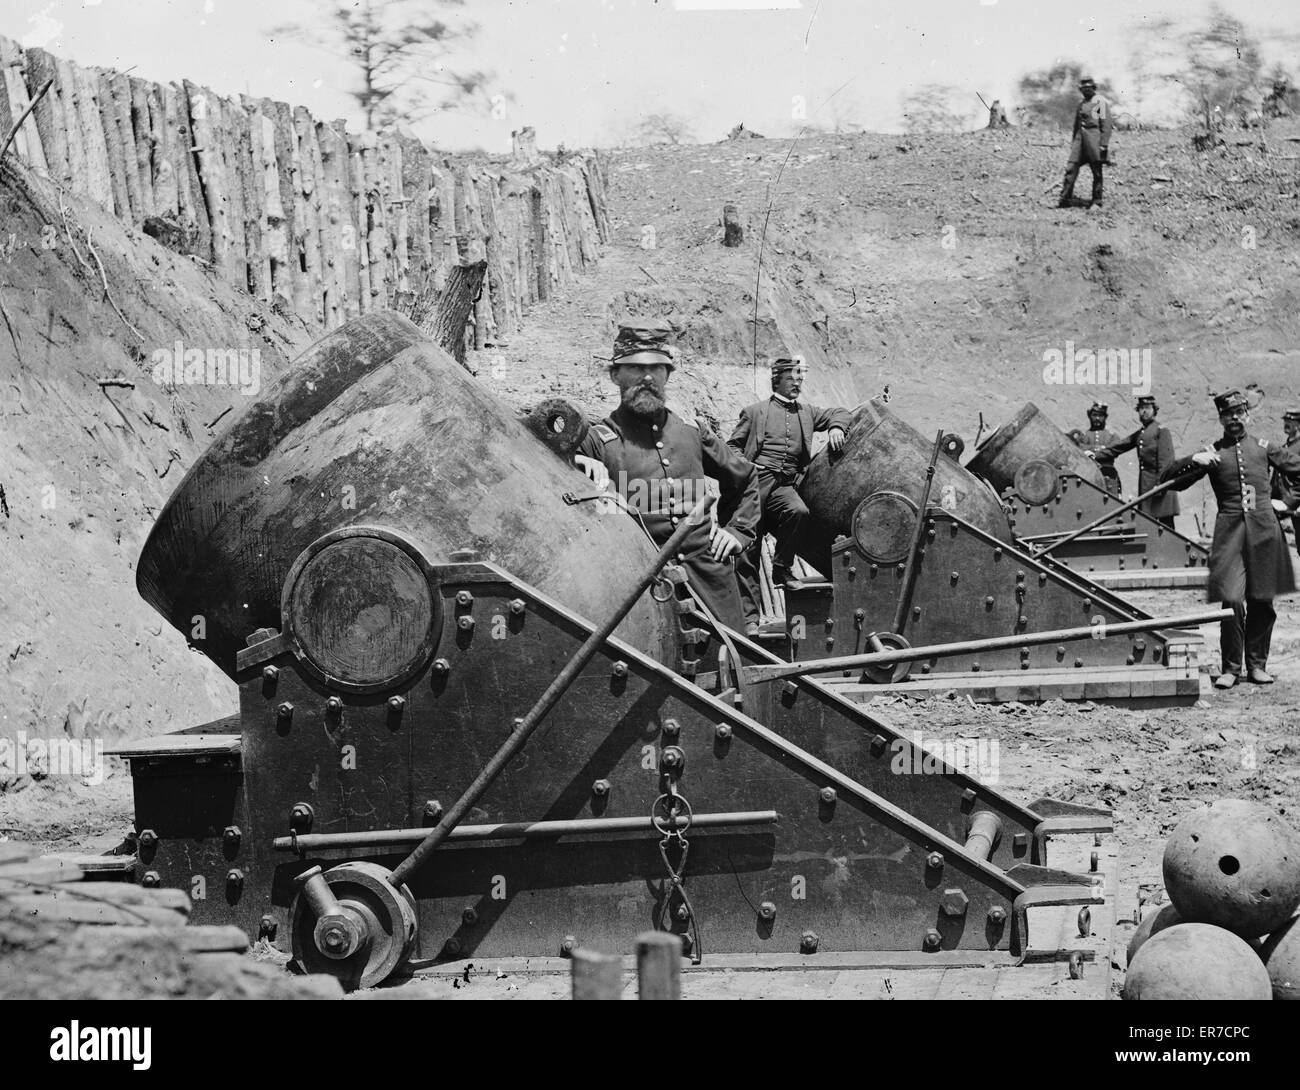 Yorktown, Virginia. Battery No. 4 mounting 13-inch mortars. South end. Date 1862 May. - Stock Image